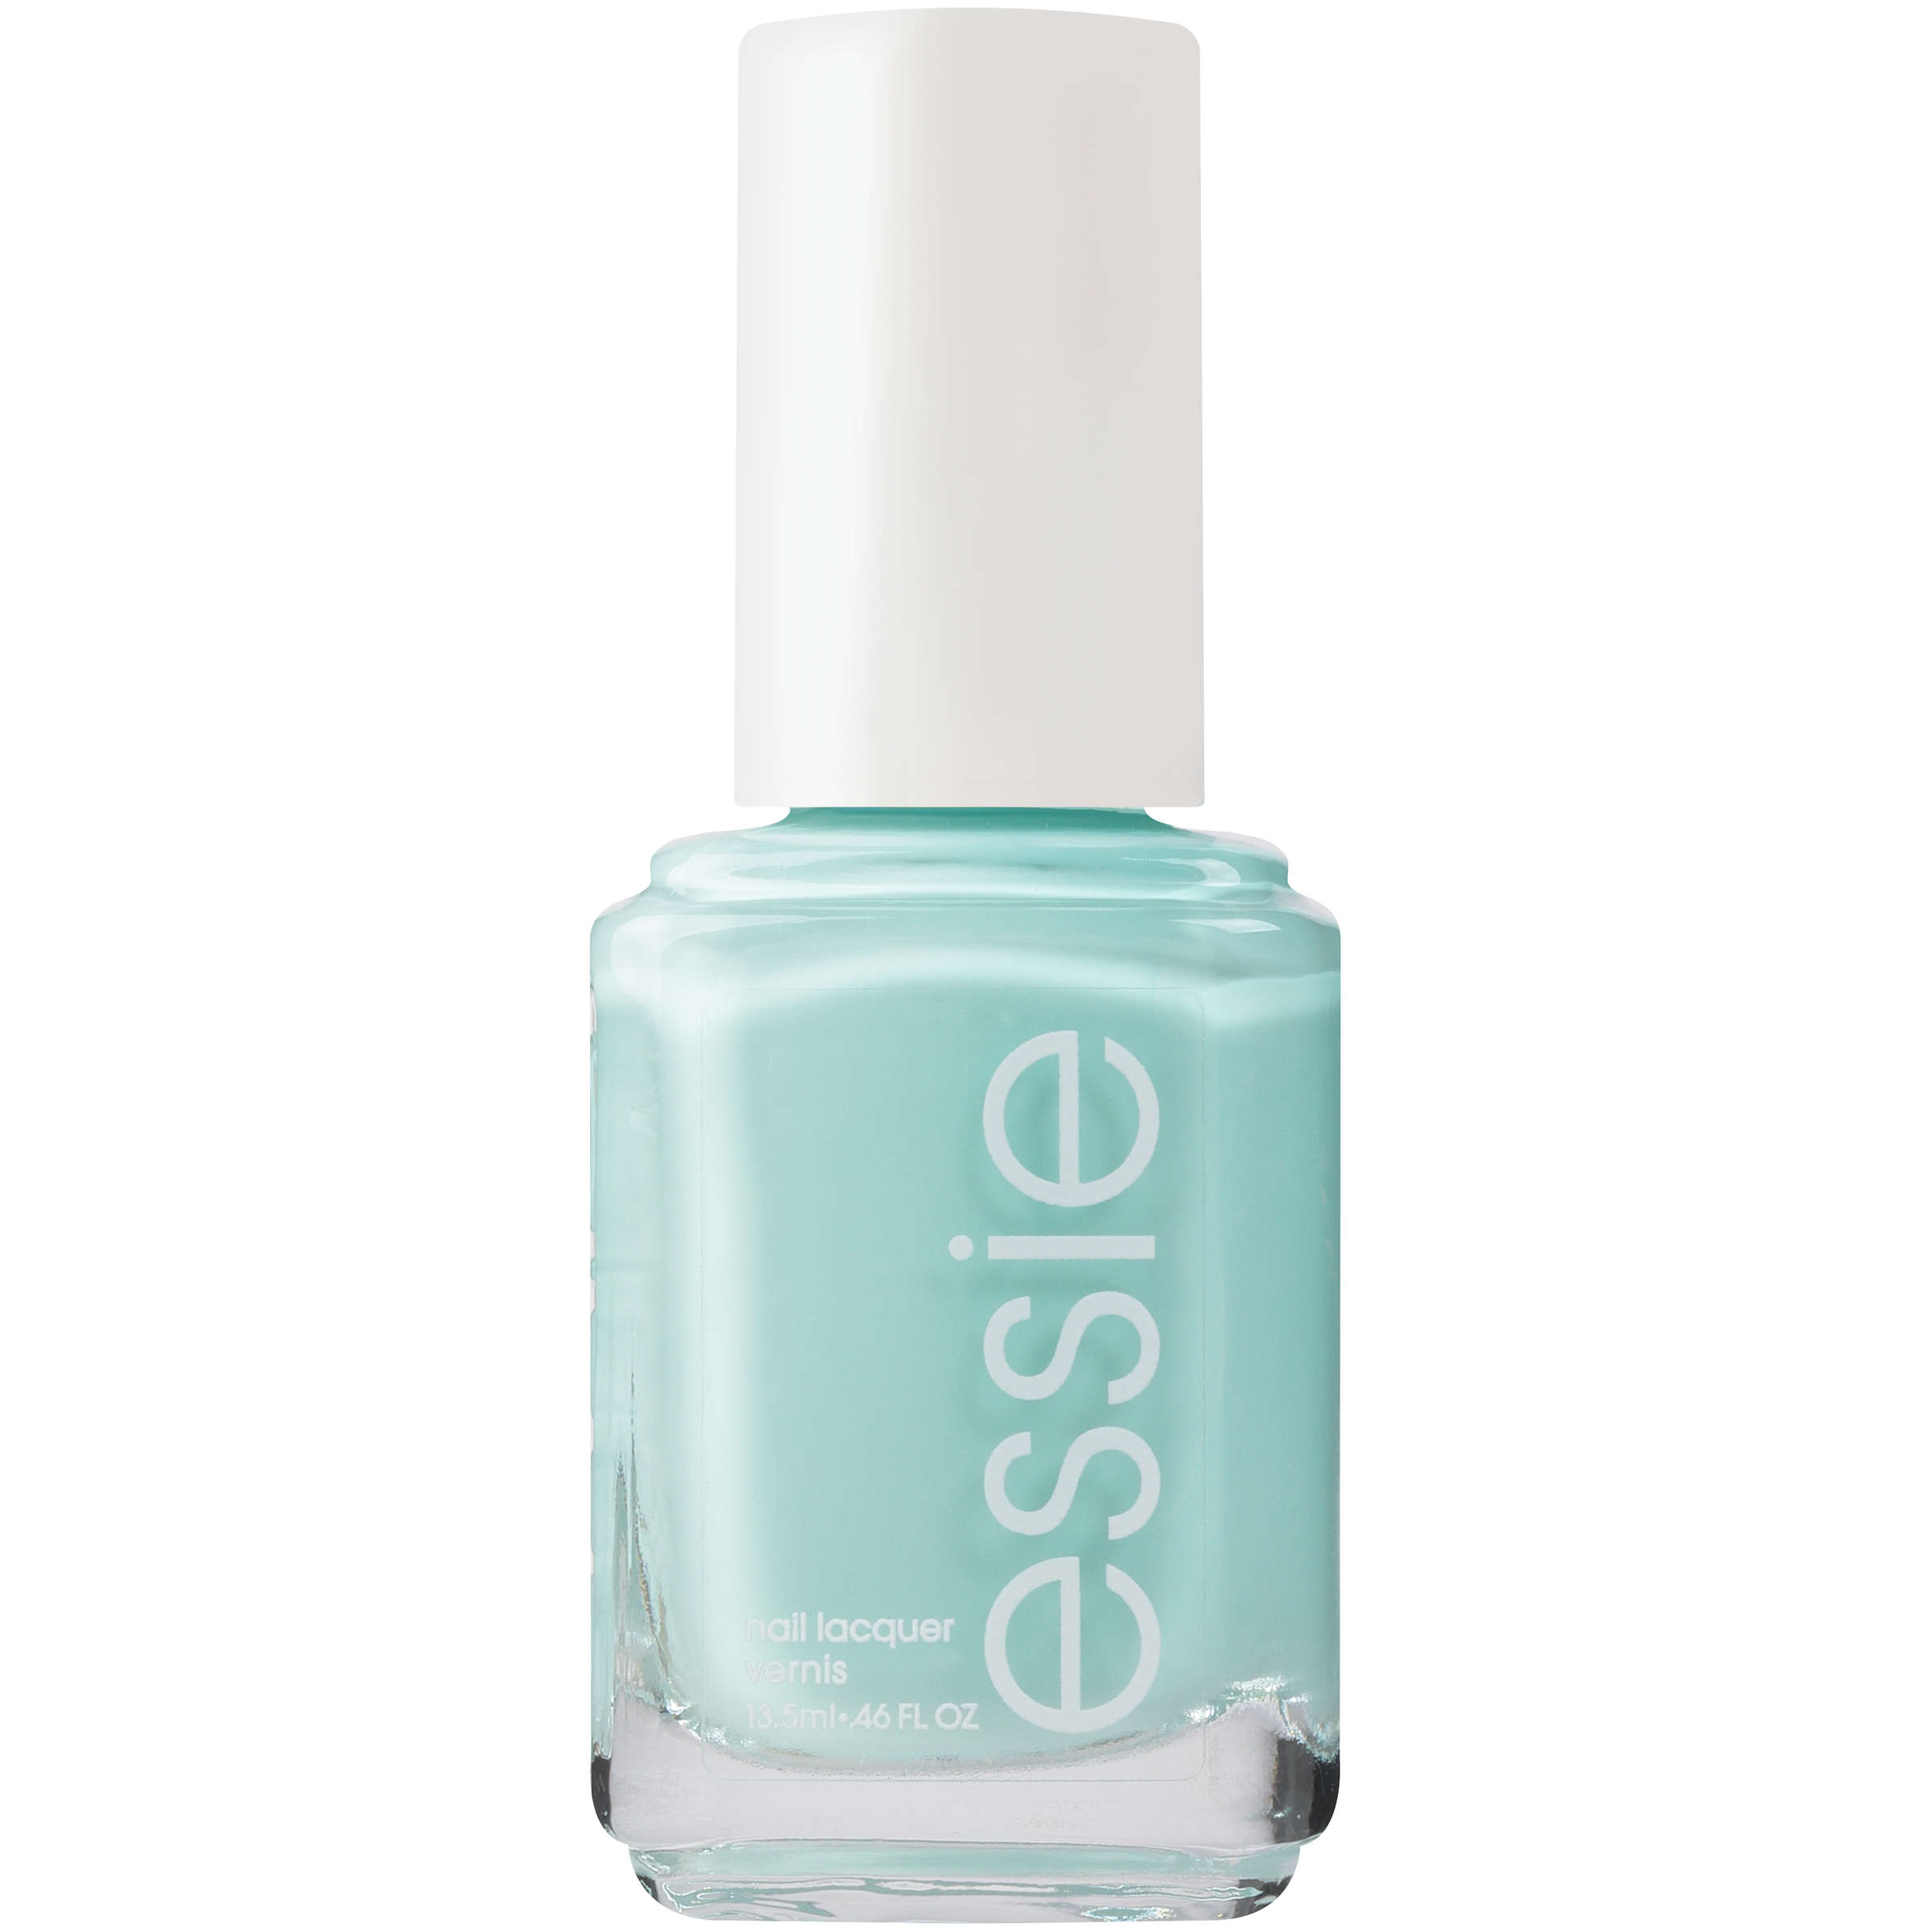 essie Nail Polish (Greens), Mint Candy Apple, 0.46 fl oz - Walmart.com